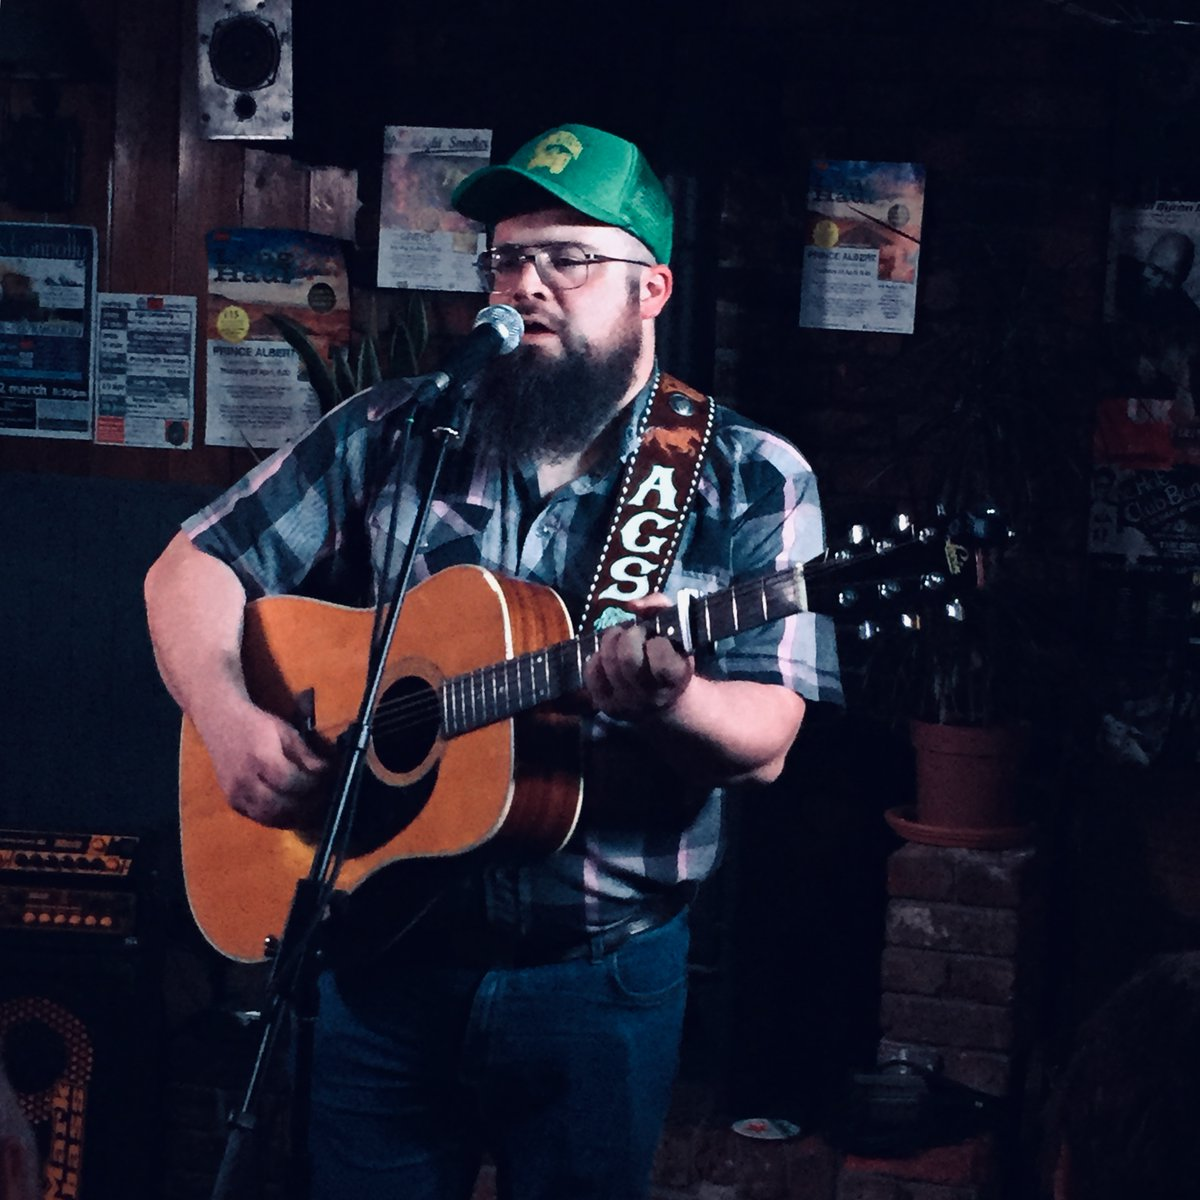 Our last gig pre-lockdown was with the fine country singer @ConnollyAgs. Today artists, promoters, agents, venues & fans are asking the UK government to protect the live music industry. Share photos of the last show you went to & use #LetTheMusicPlay to show your support!